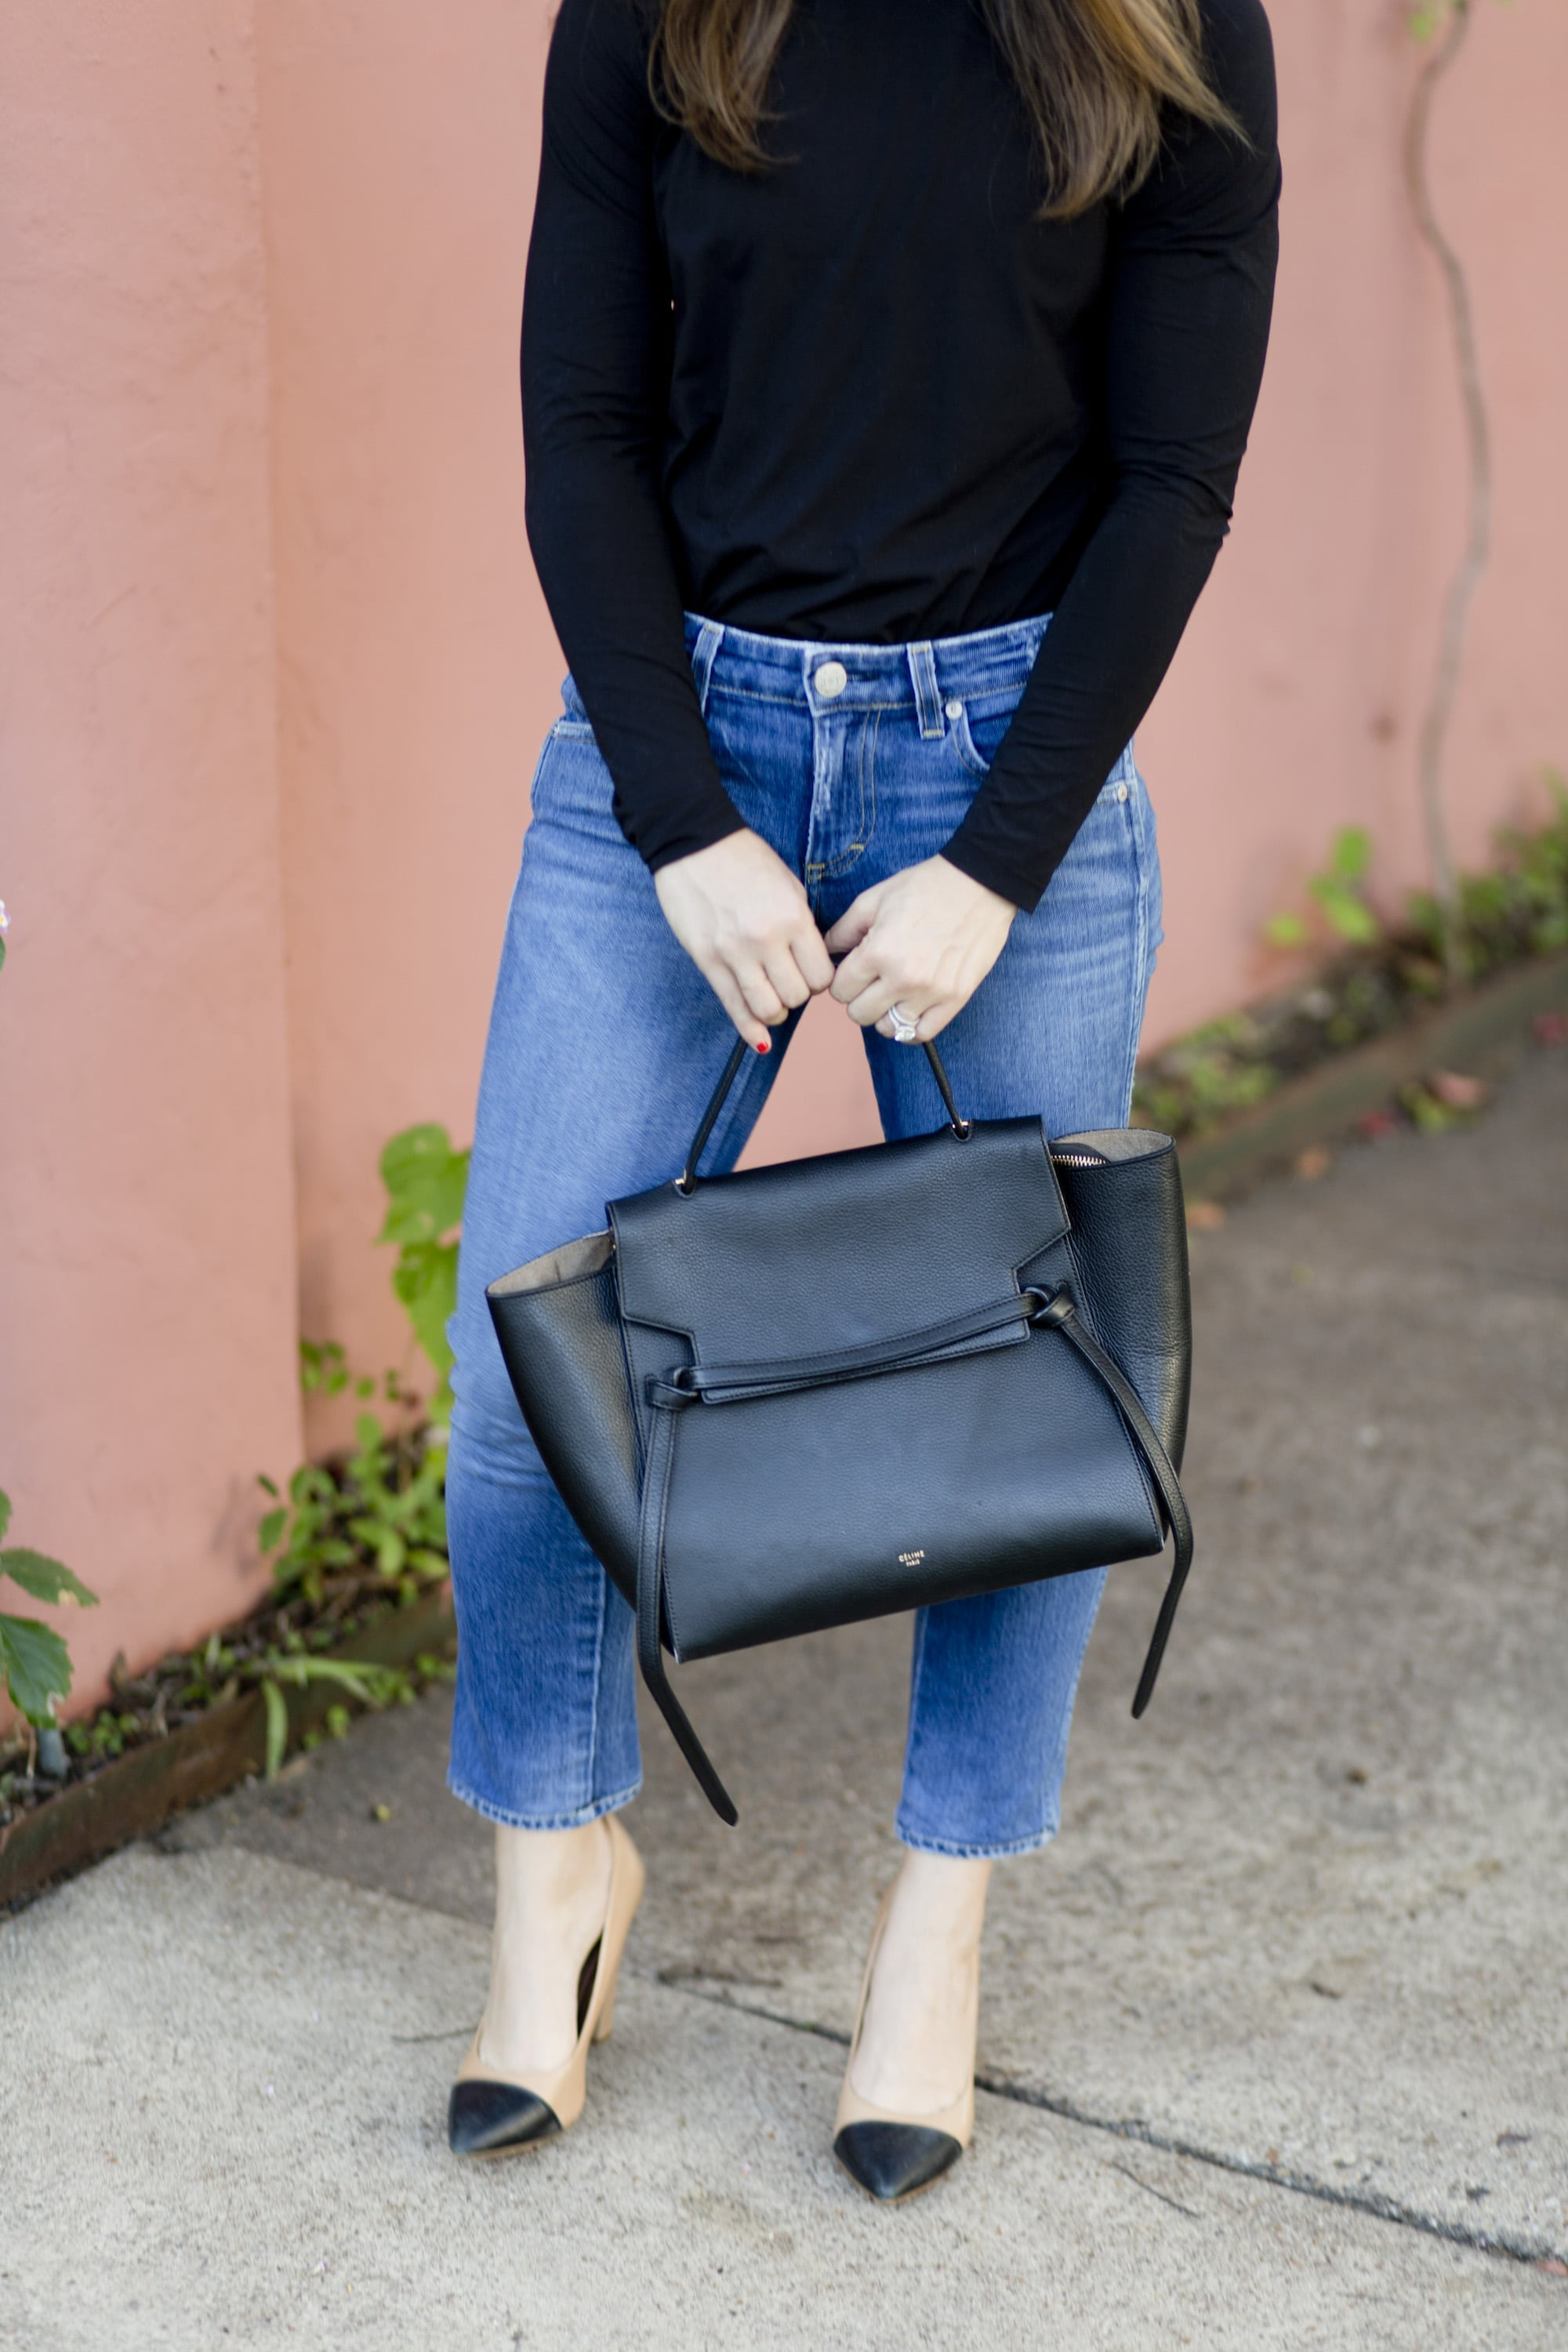 Black and Denim with Celine Bag